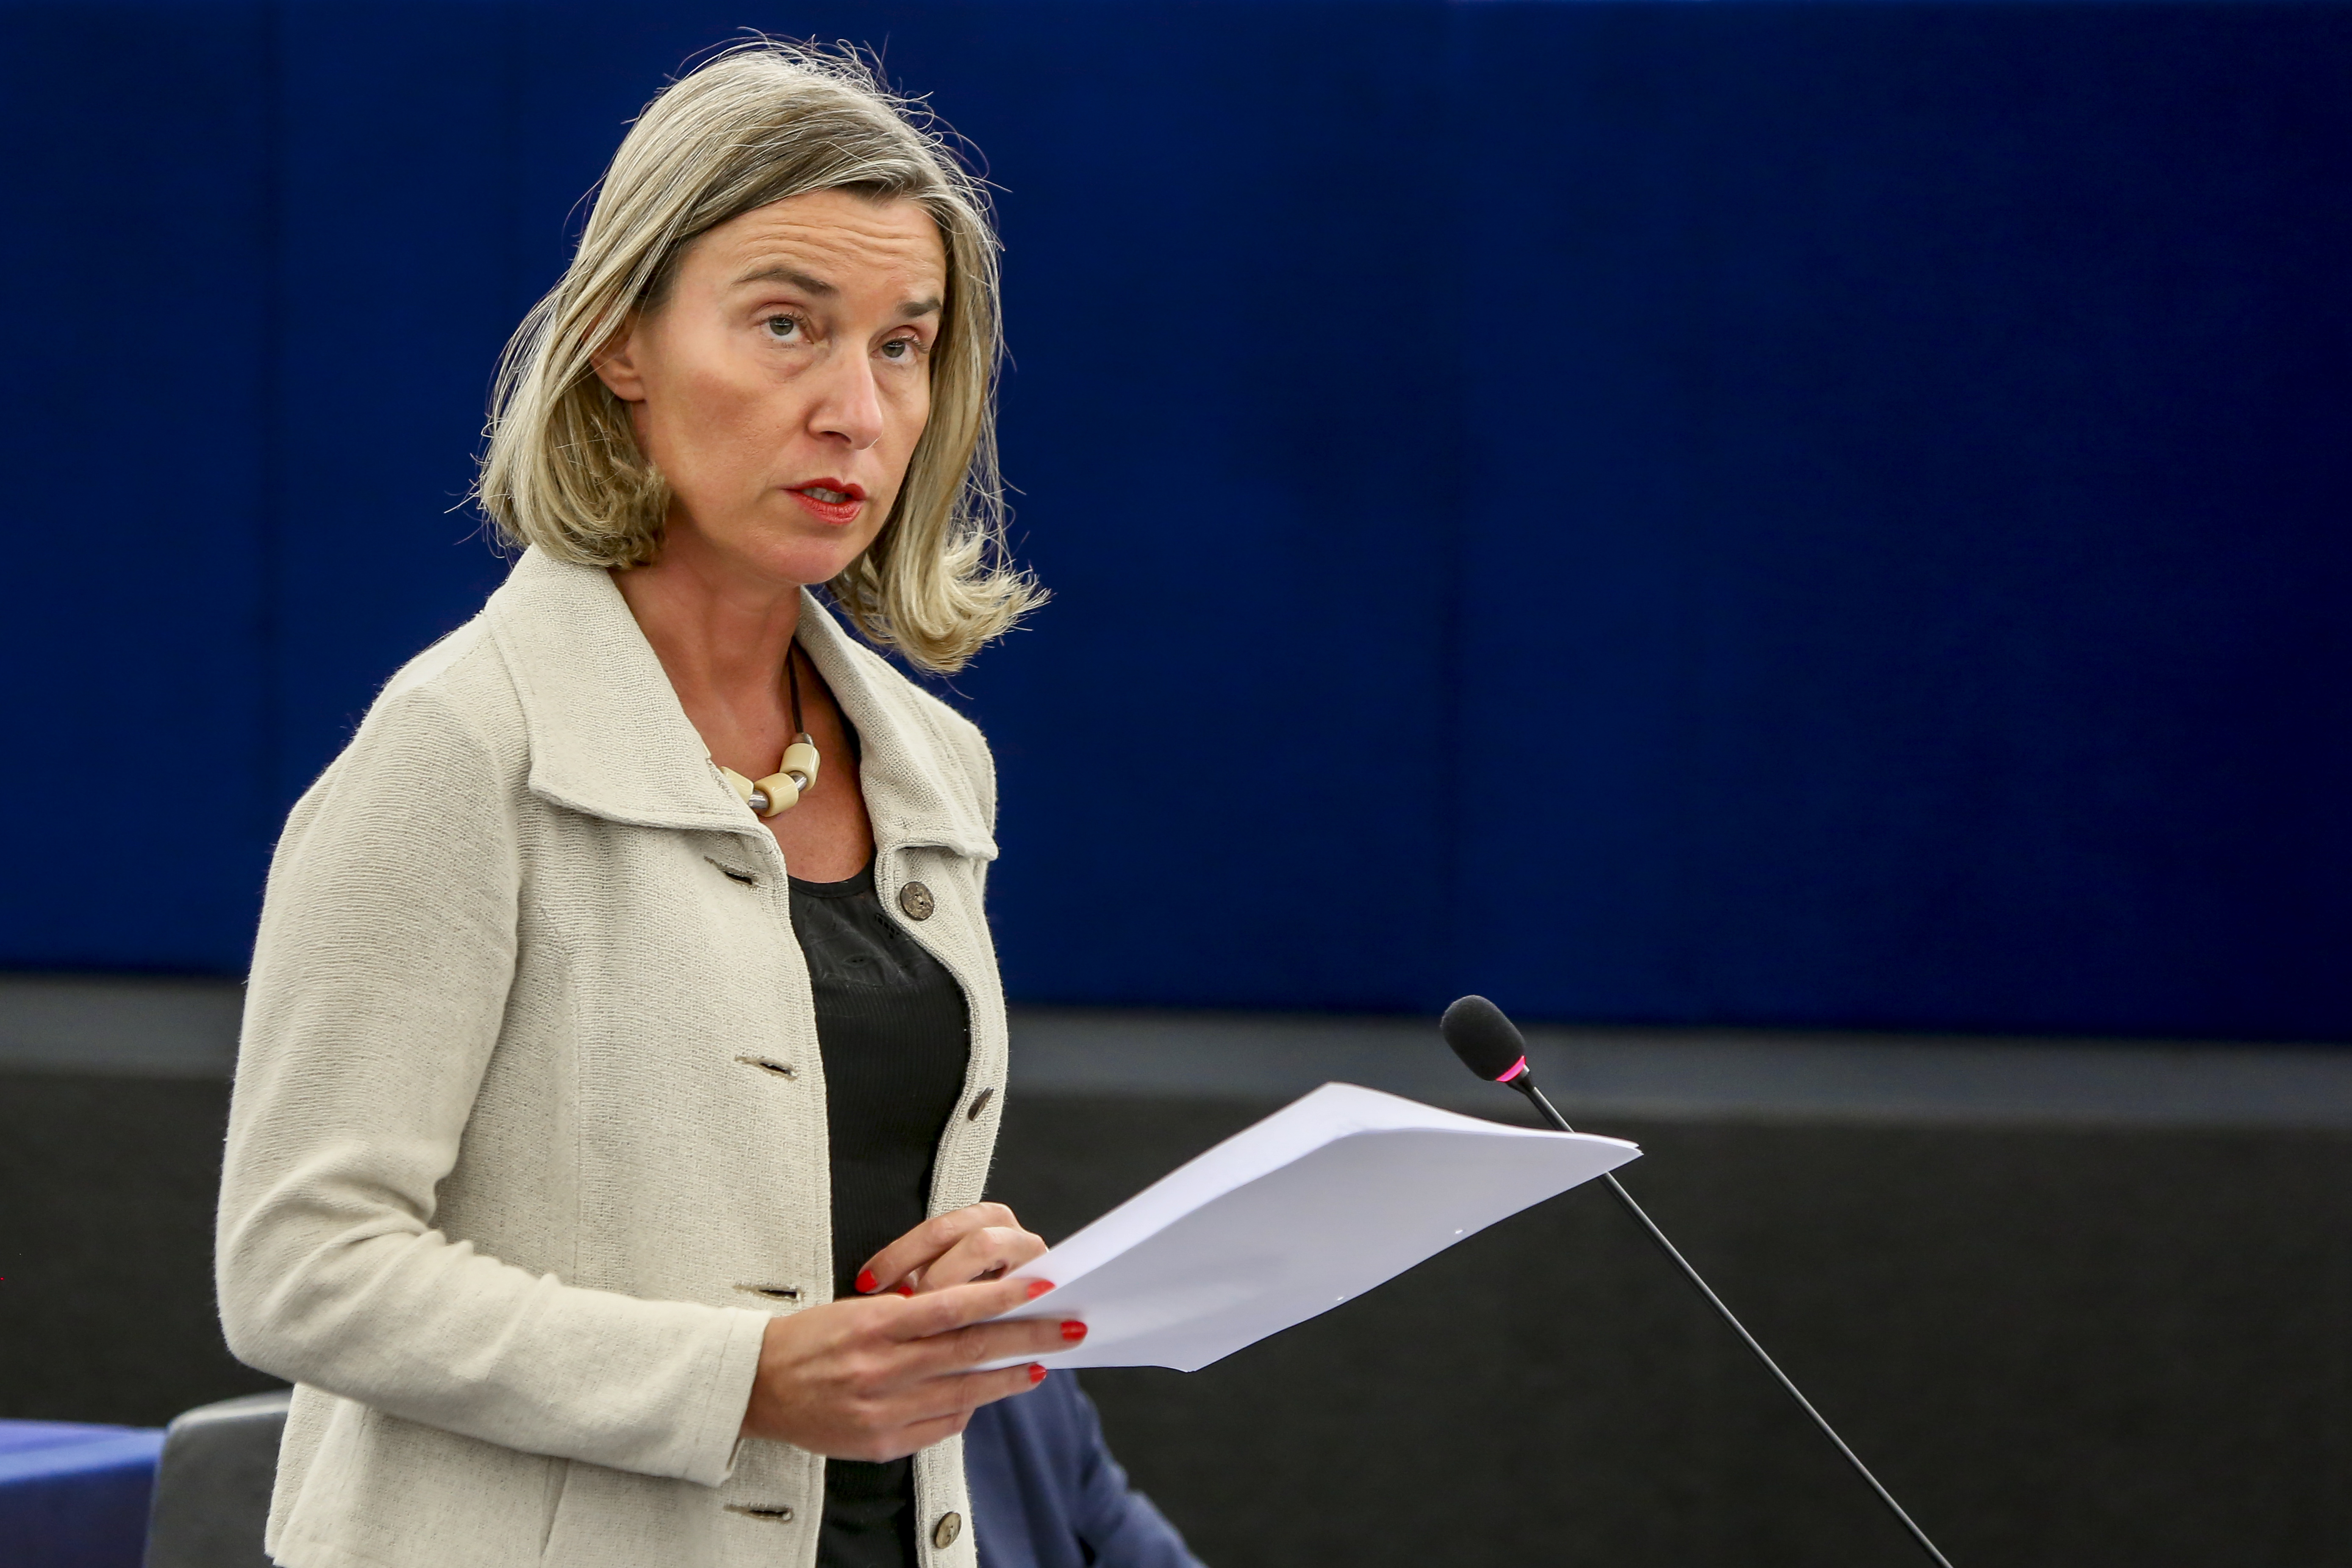 Ms Federica MOGHERINI, High Representative of the EU for Foreign Affairs and Security Policy.